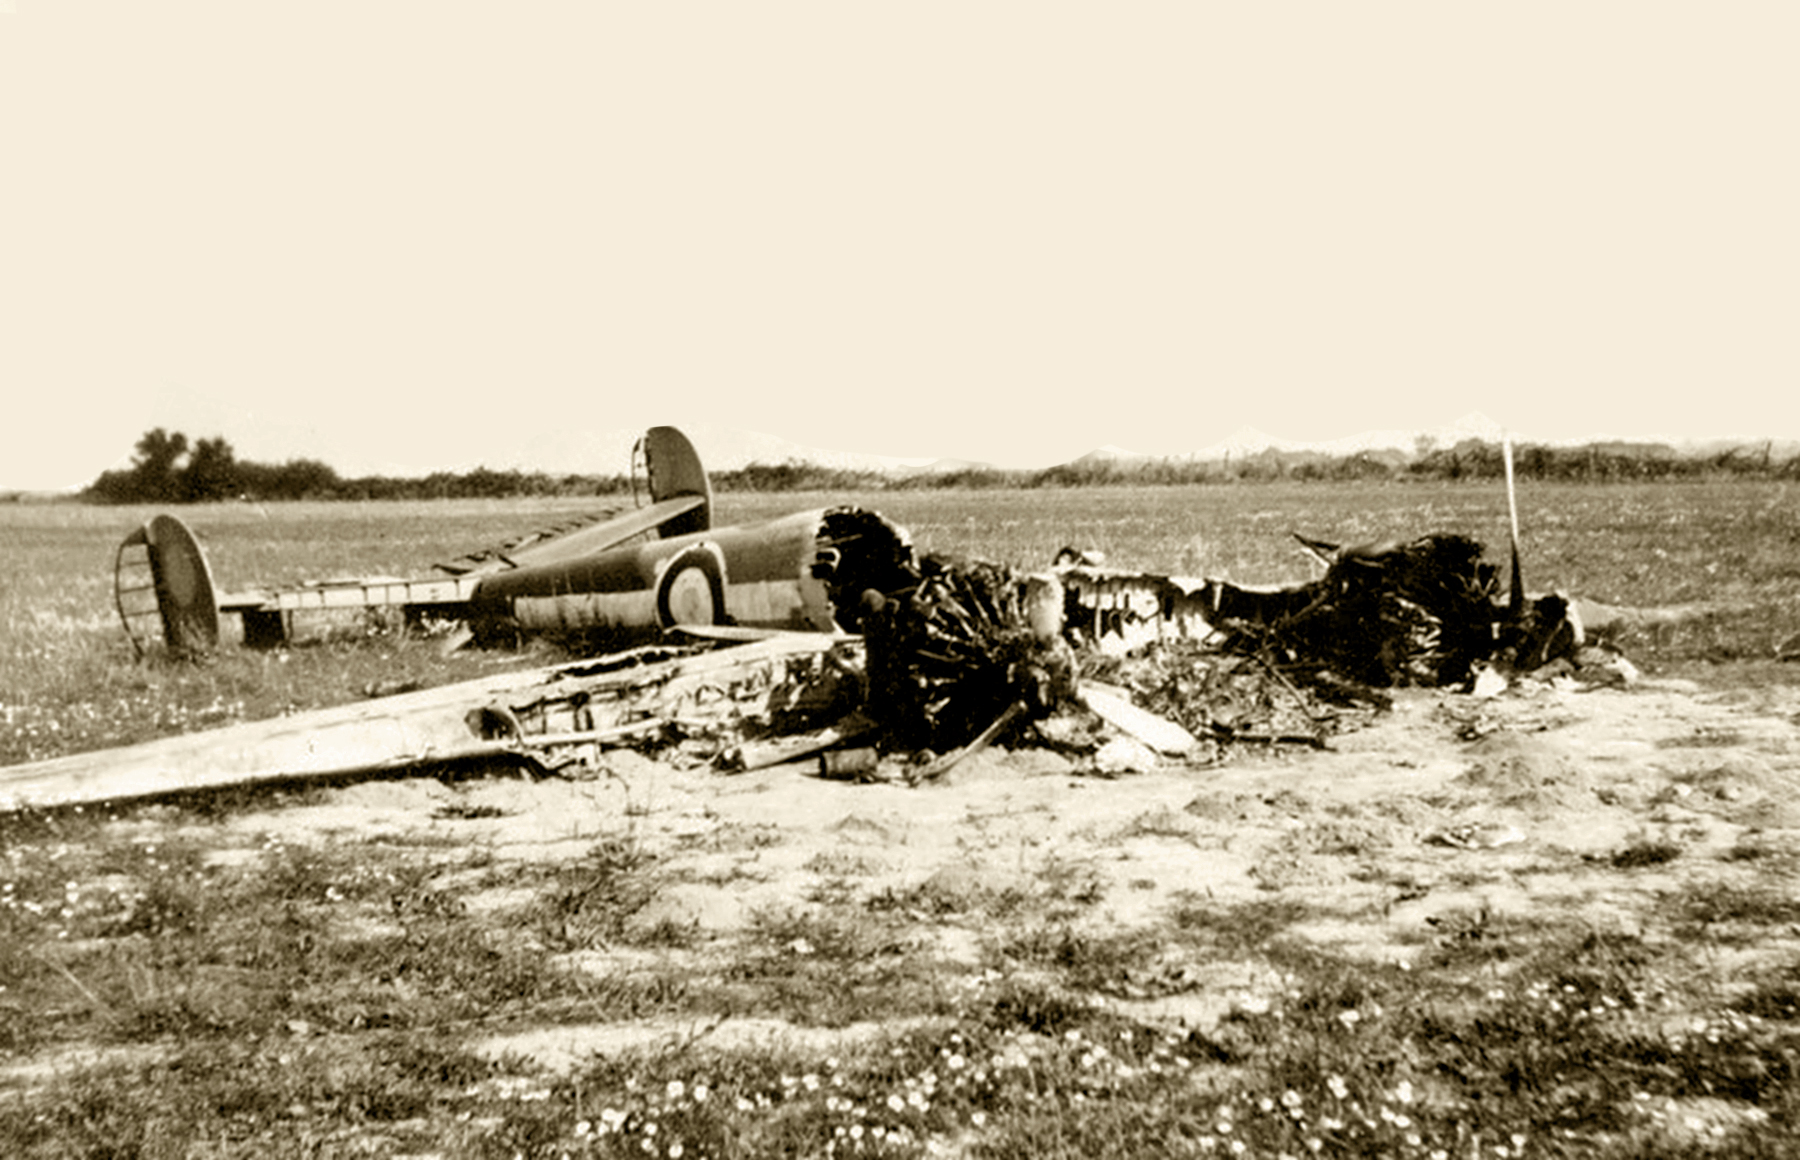 French Airforce Potez 63.11 destroyed after force landing France May Jun 1940 ebay 01